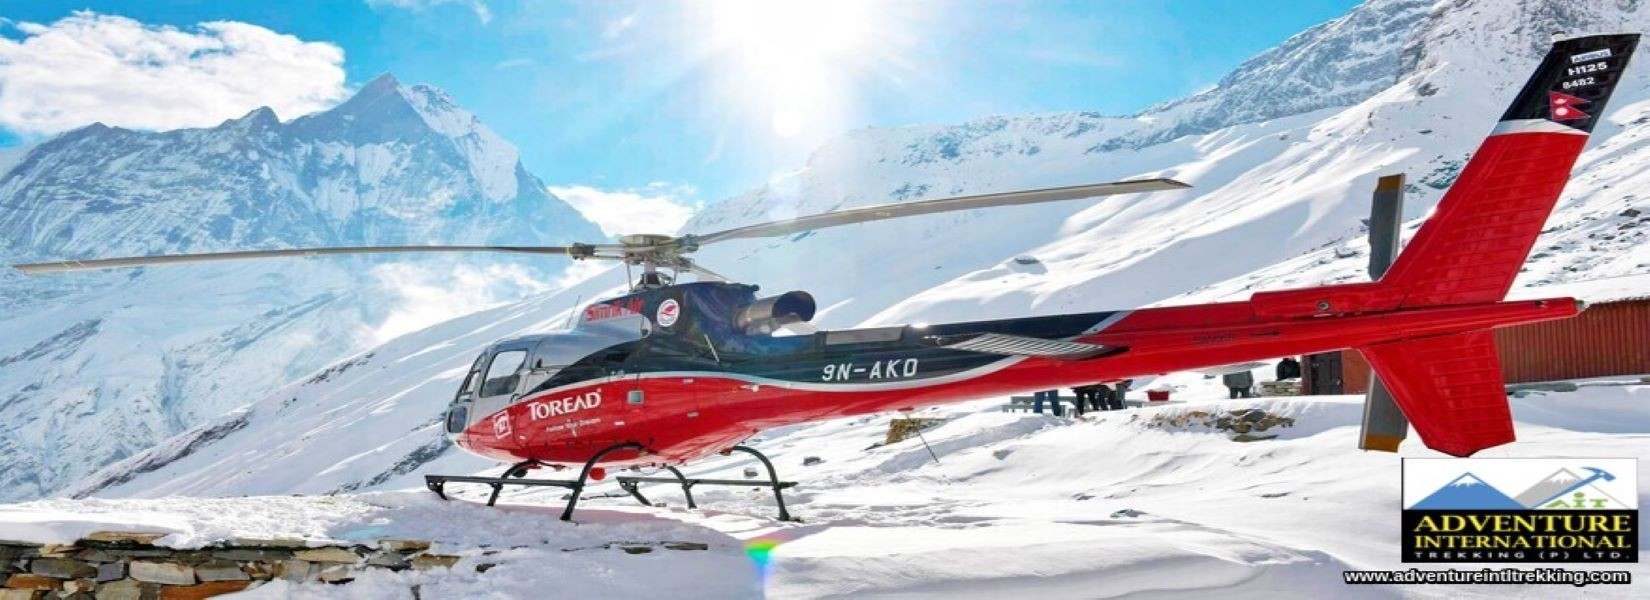 Annapurna Base Camp Helicopter Tour Booking